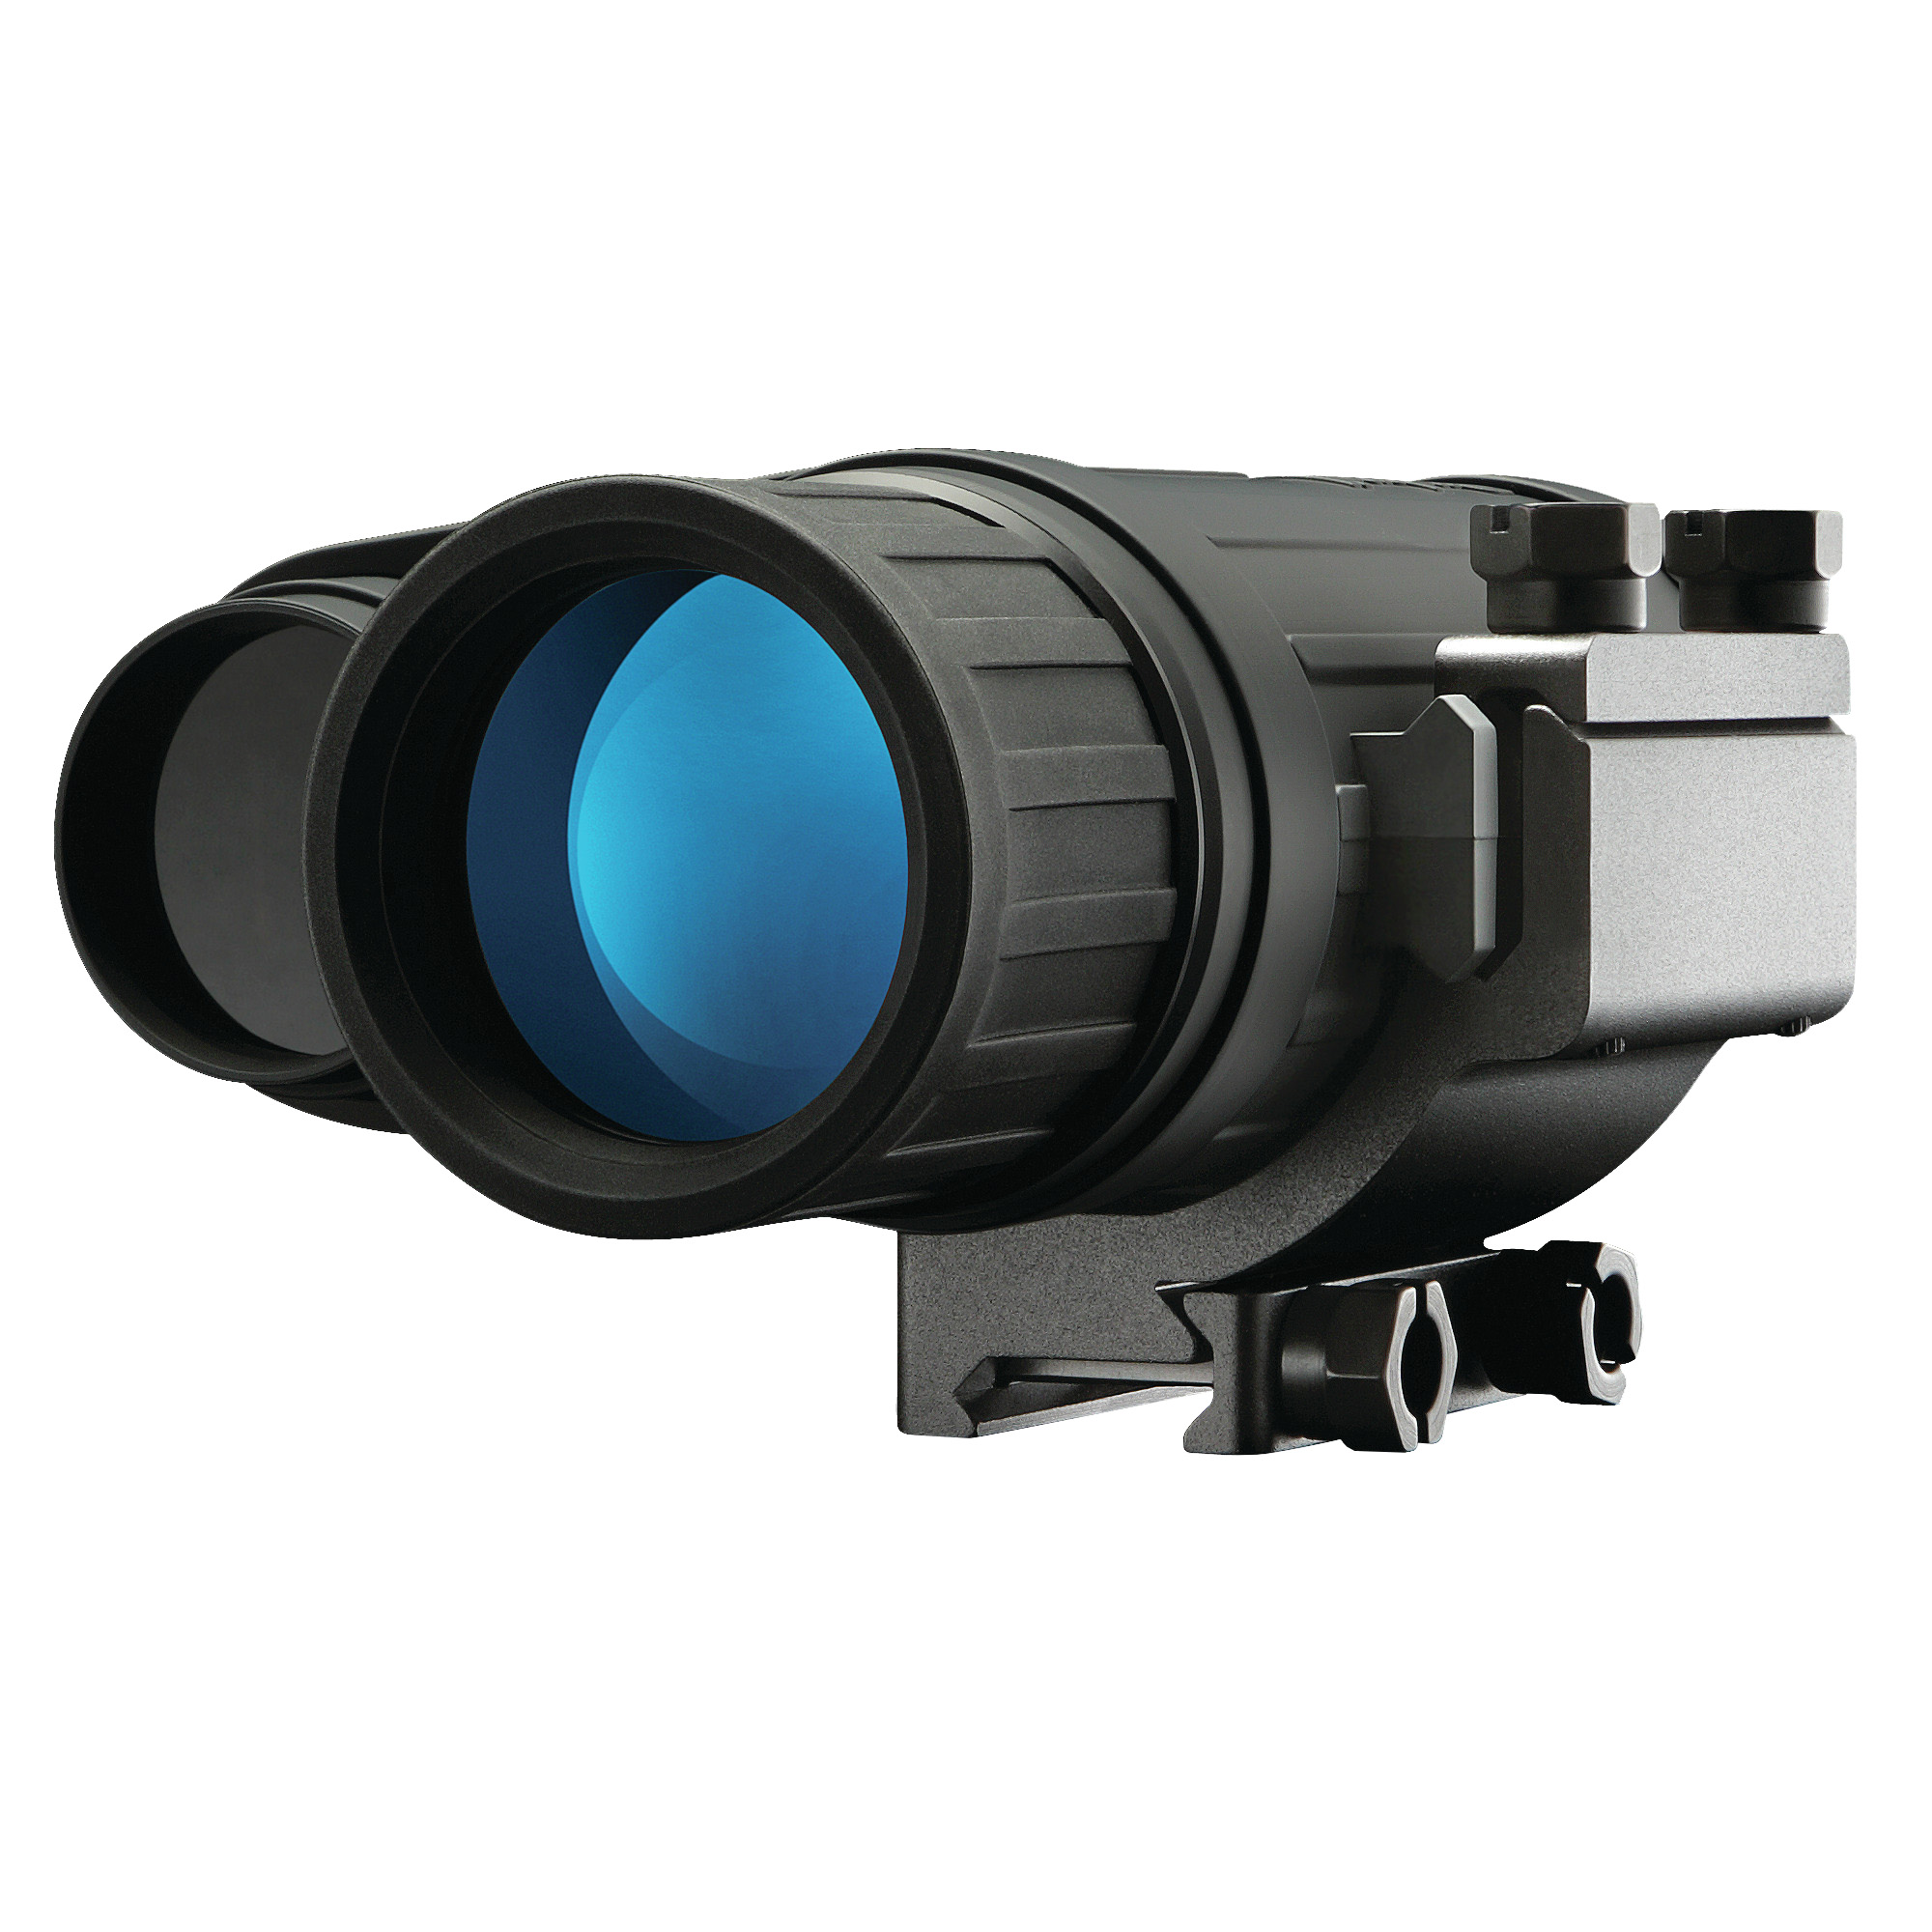 """With the digital Equinox Z Night Vision monocular from Bushnell"""" you'll be able to enjoy outstanding optical clarity"""" ultimate illumination and an unmatched field of view. Features such as zoom"""" image capture"""" video recording and daytime color lead the way in their flagship series."""